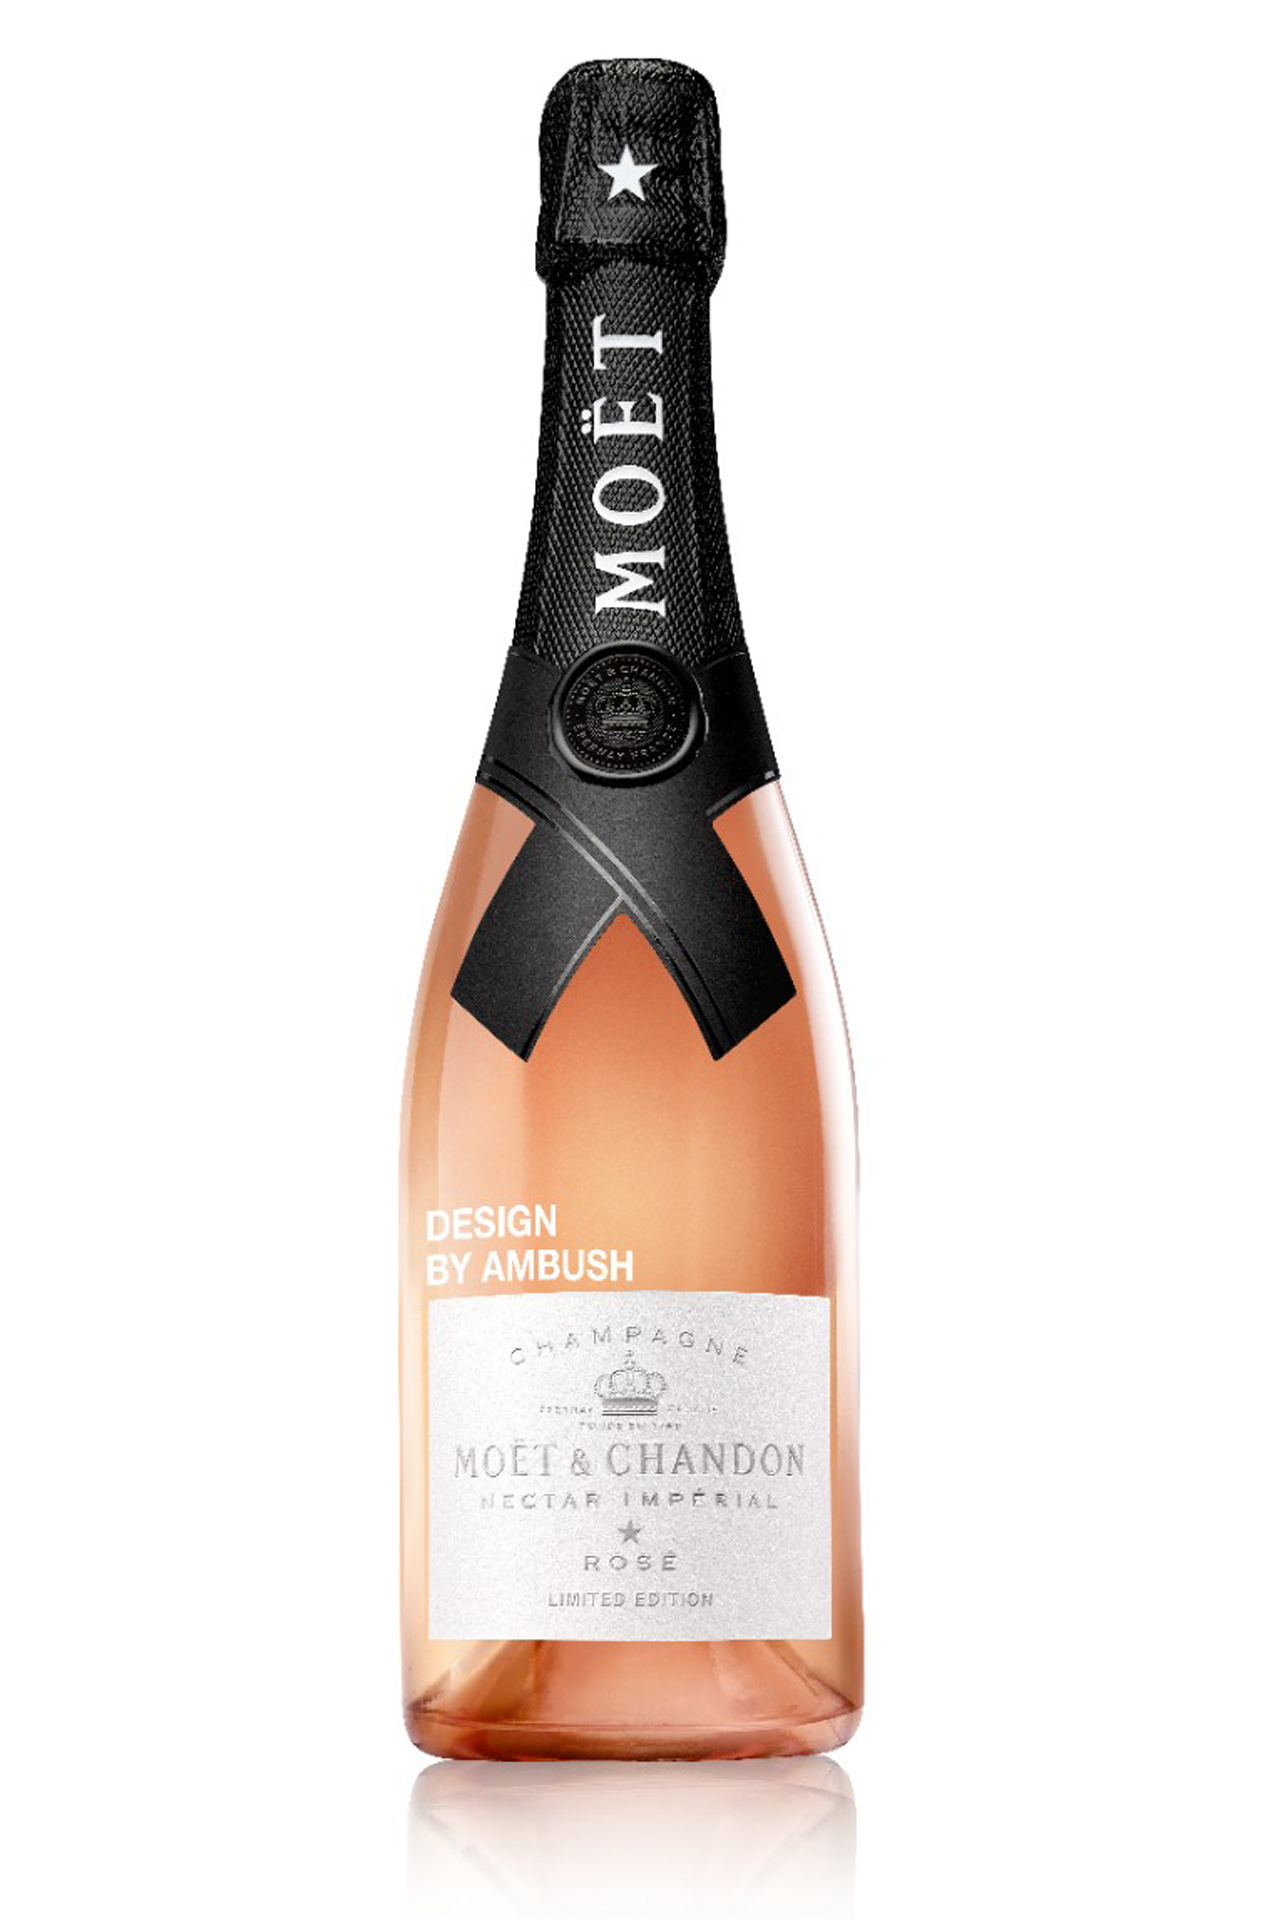 Yoon Ahn Shares the Inspiration Behind Her Collaborative Moët & Chandon Bottles